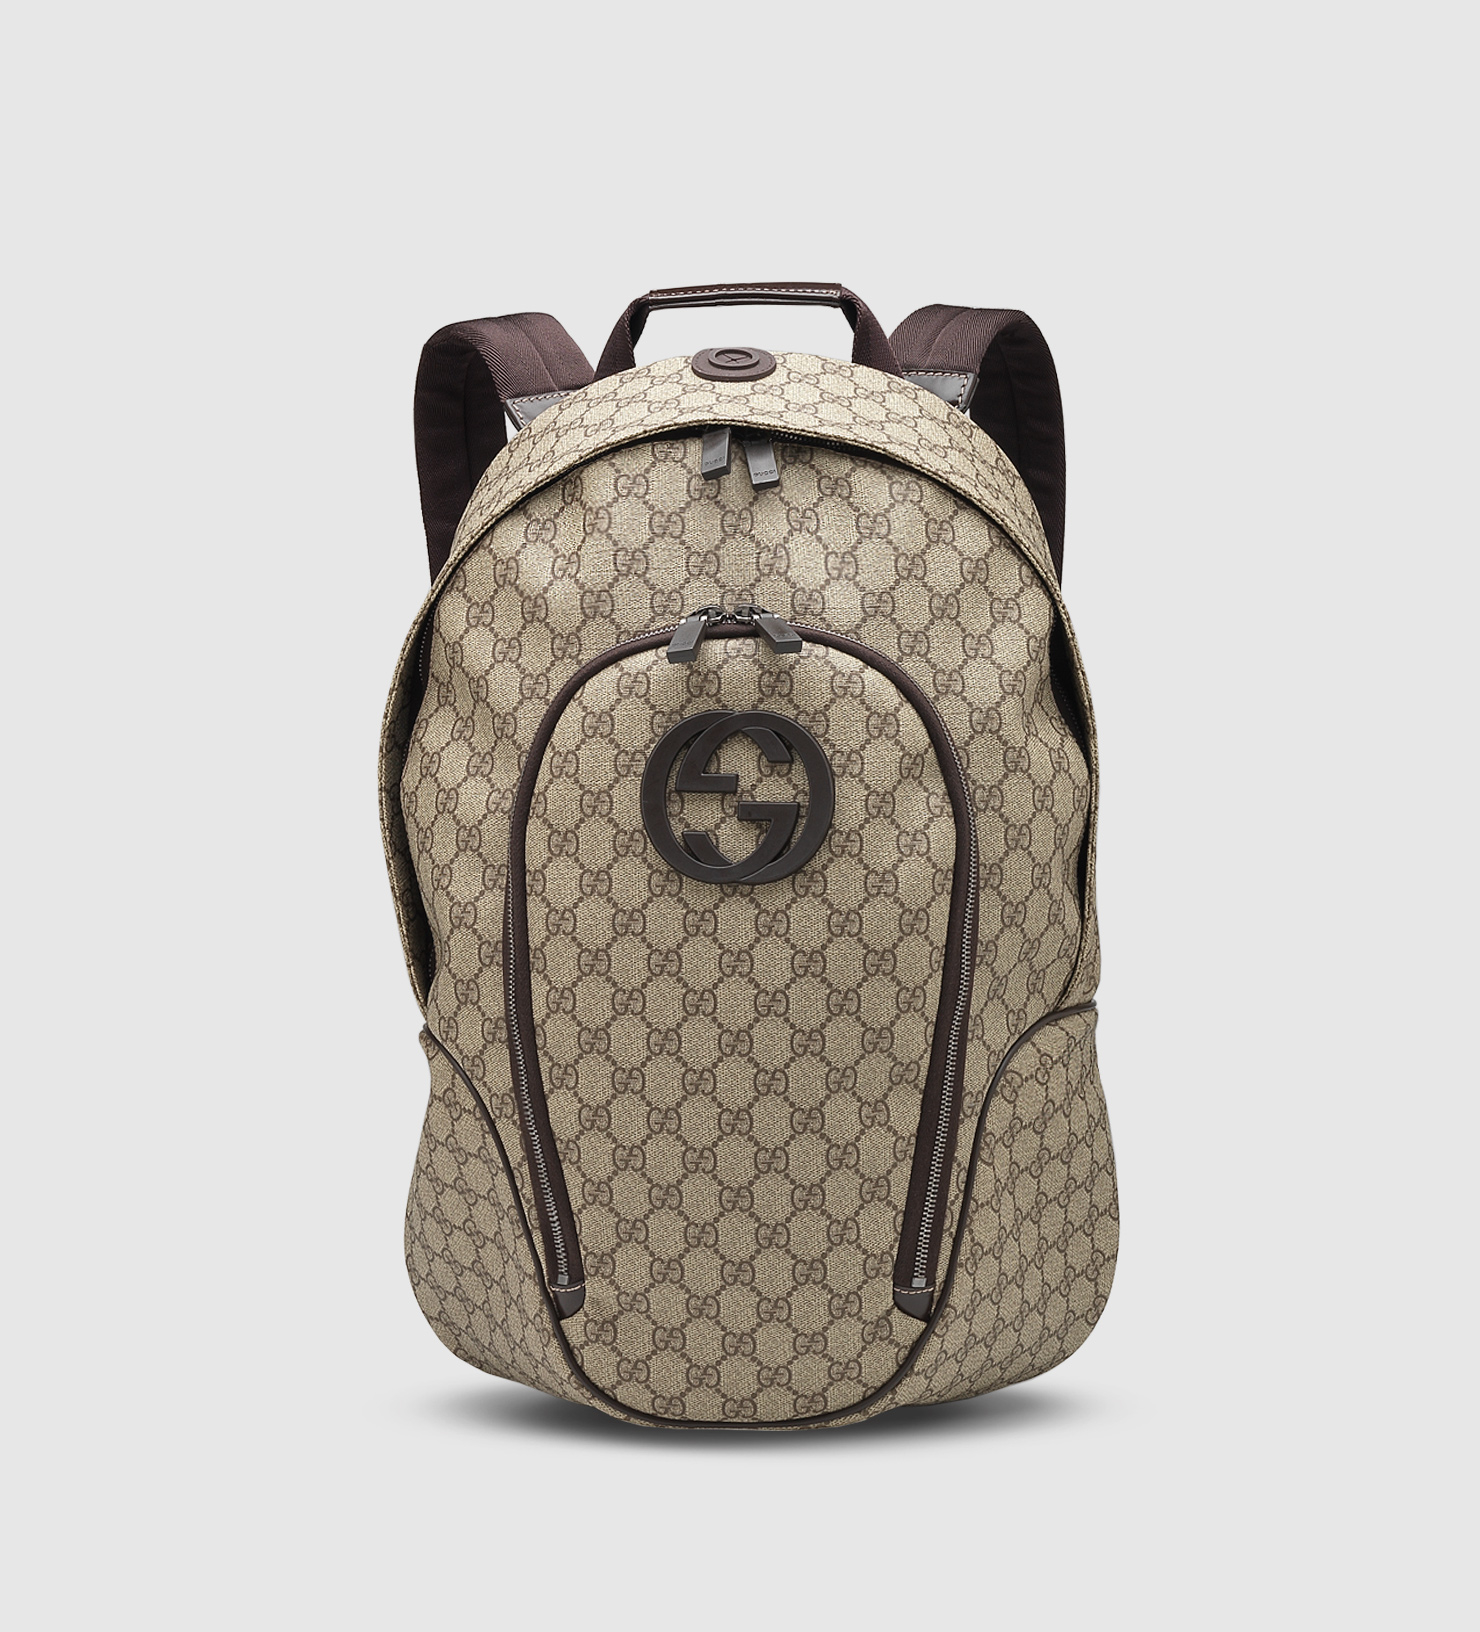 6d61b22791a Lyst - Gucci Gg Supreme Canvas Interlocking G Backpack in Natural